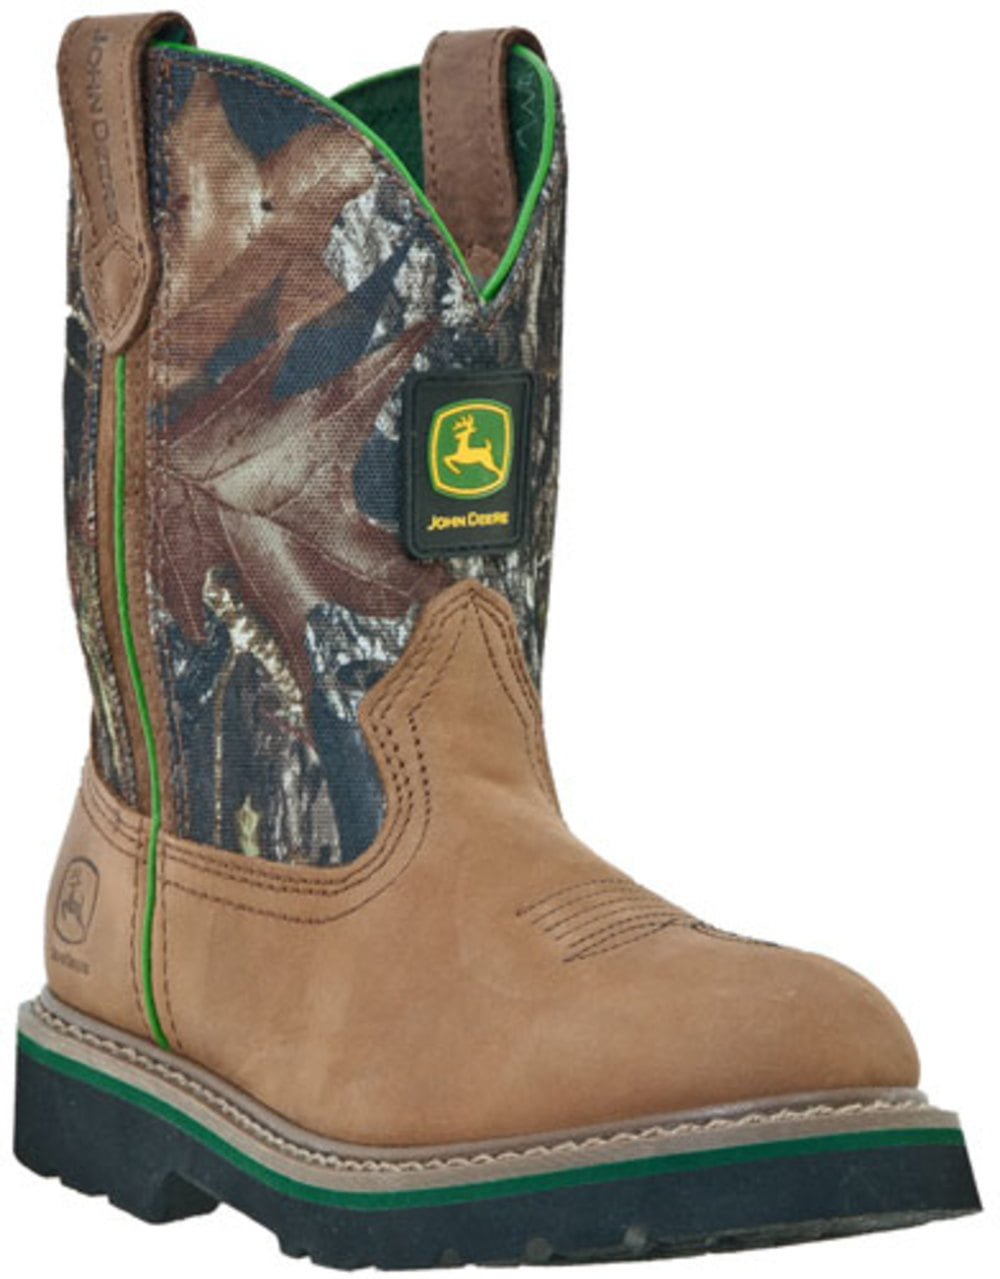 John Deere Kid's Boots Tan Camo 1 W by